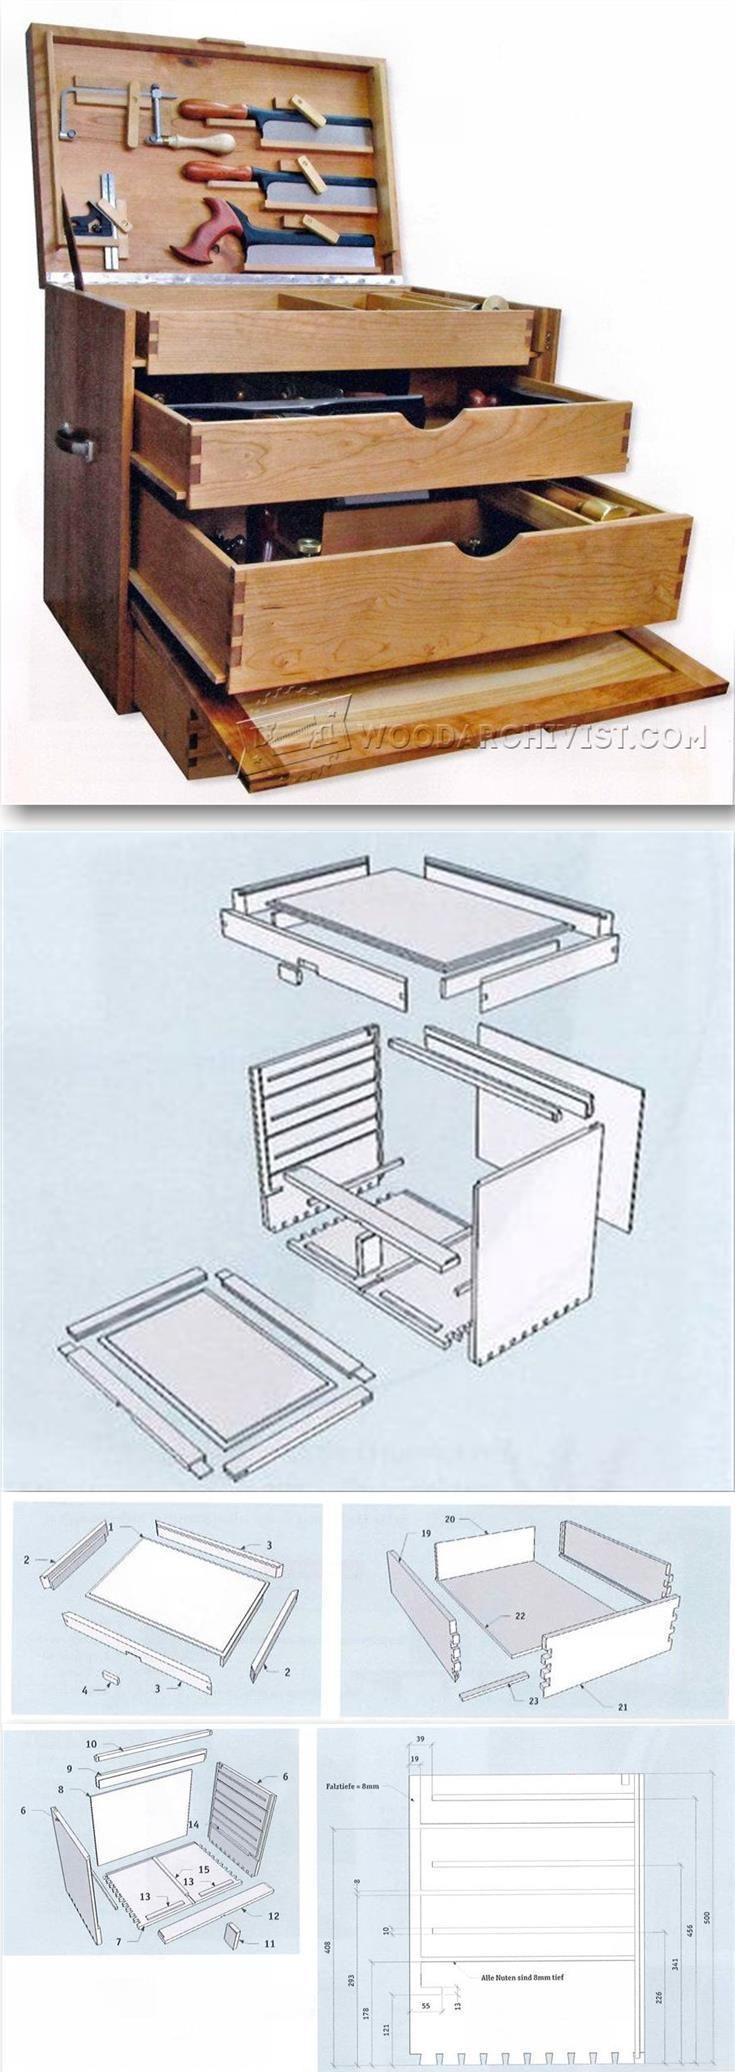 Woodworking Tool Chest Plans - Workshop Solutions Projects, Tips and Tricks | WoodArchivist.com